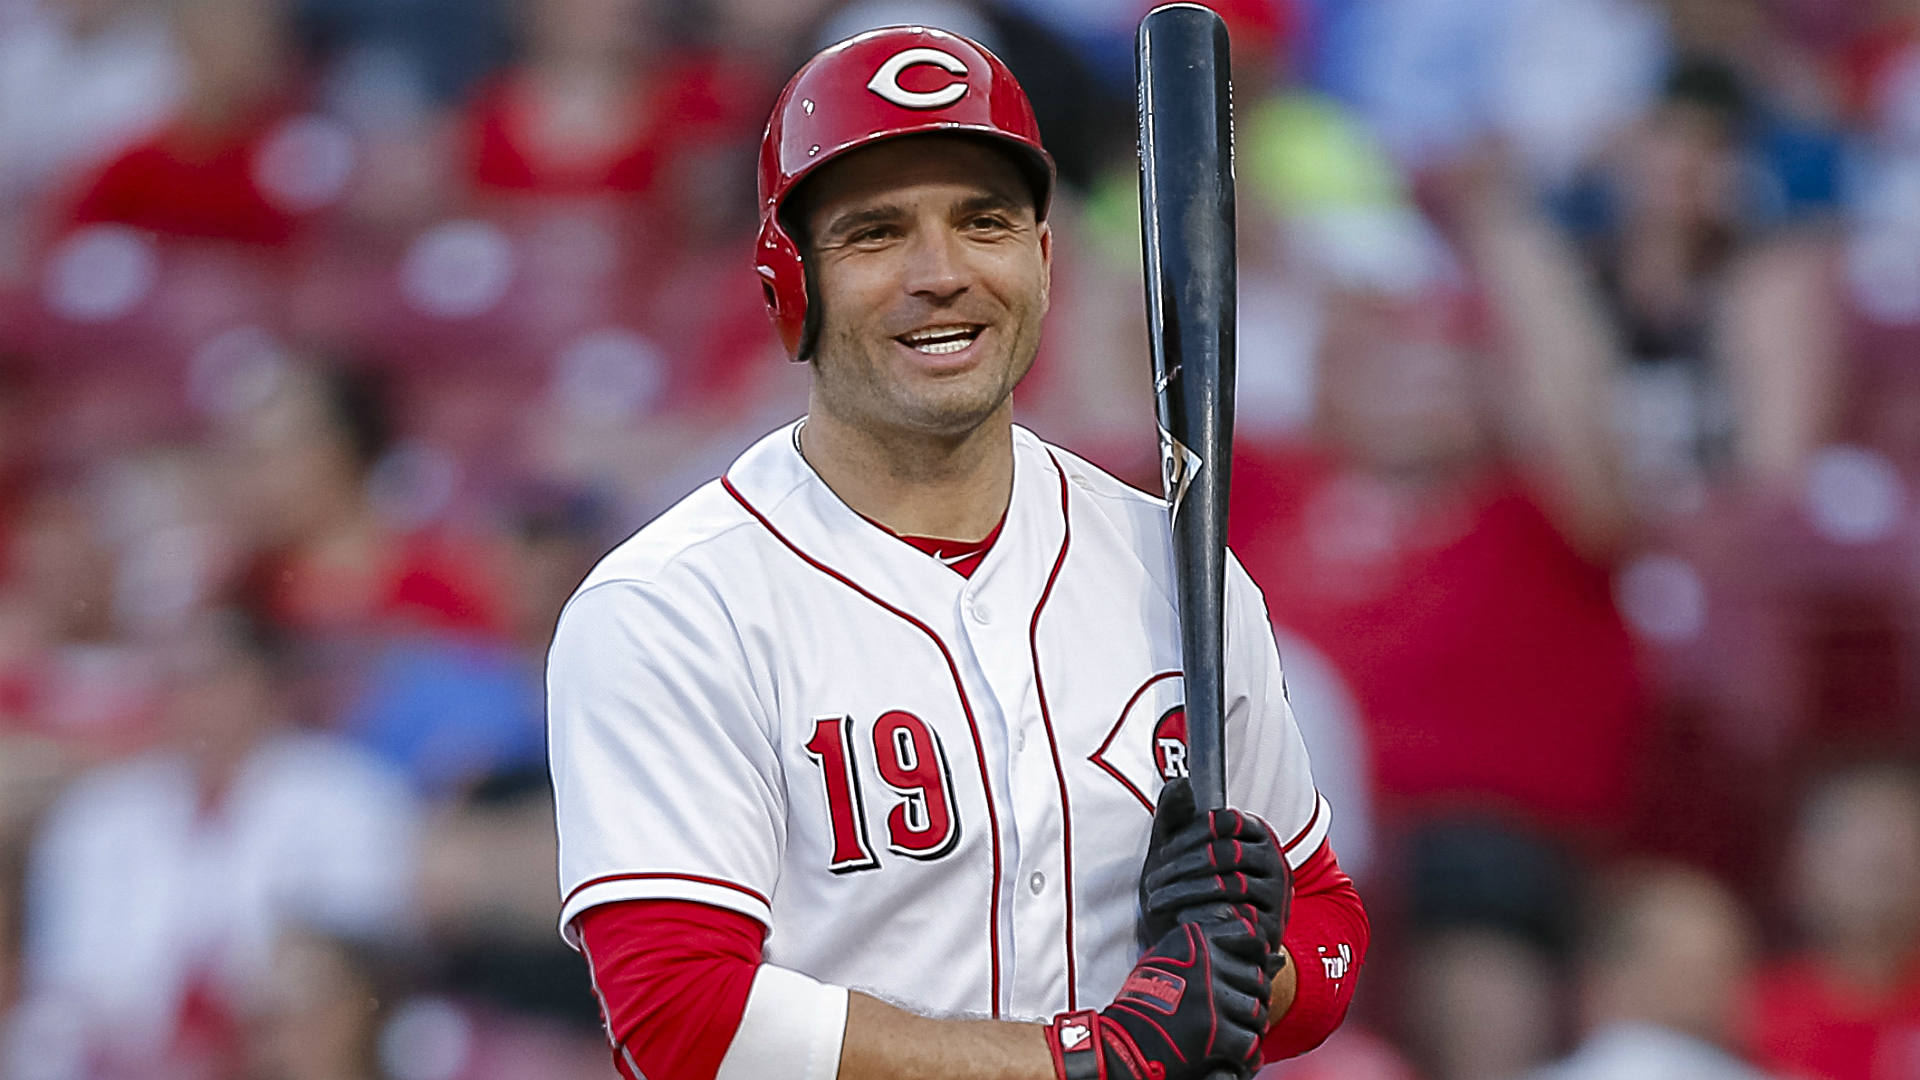 Reds' Joey Votto brightens fan day with signed baseball after first inning ejection